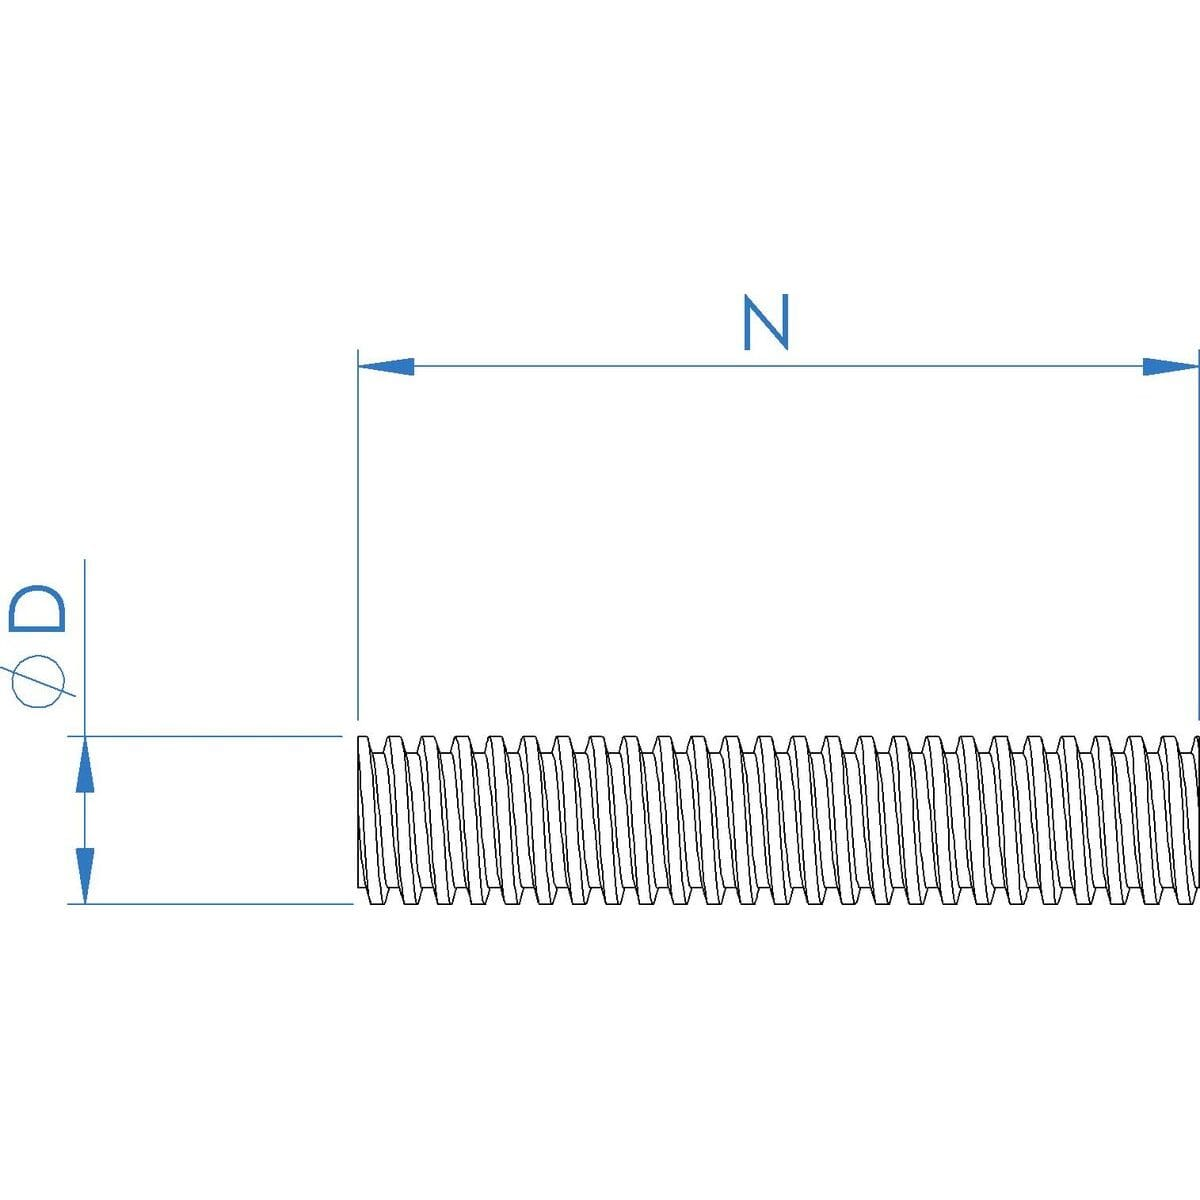 TR20x4 (20mm x 4mm Lead) x 290mm Left Hand Trapezoidal Lead Screws - Marine Stainless Steel (A4) Drawing